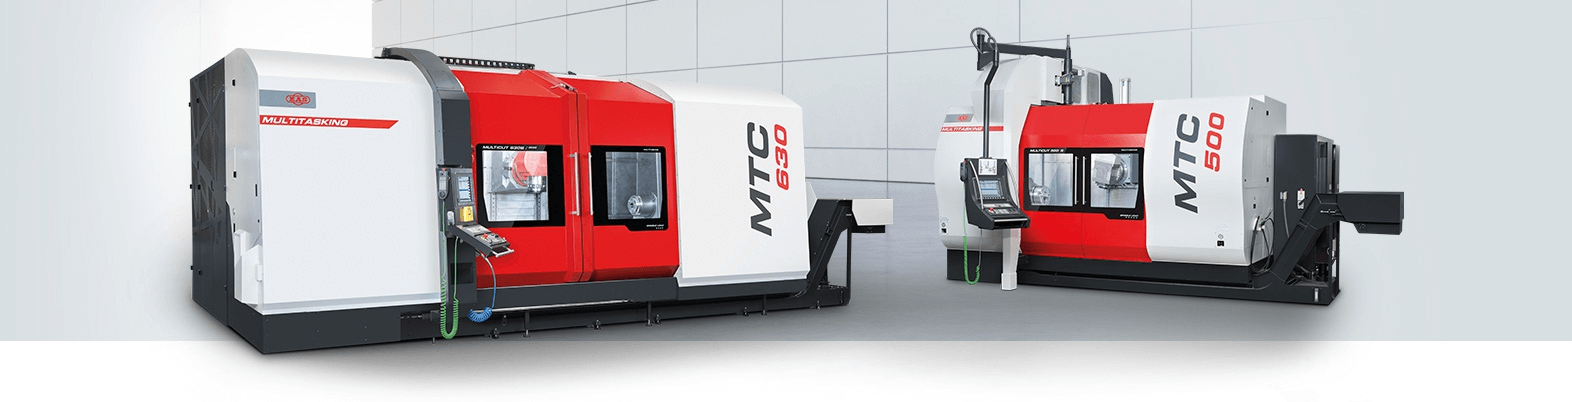 Euro Gulf Machine Tools and Automation | Experts in Automation, IIoT